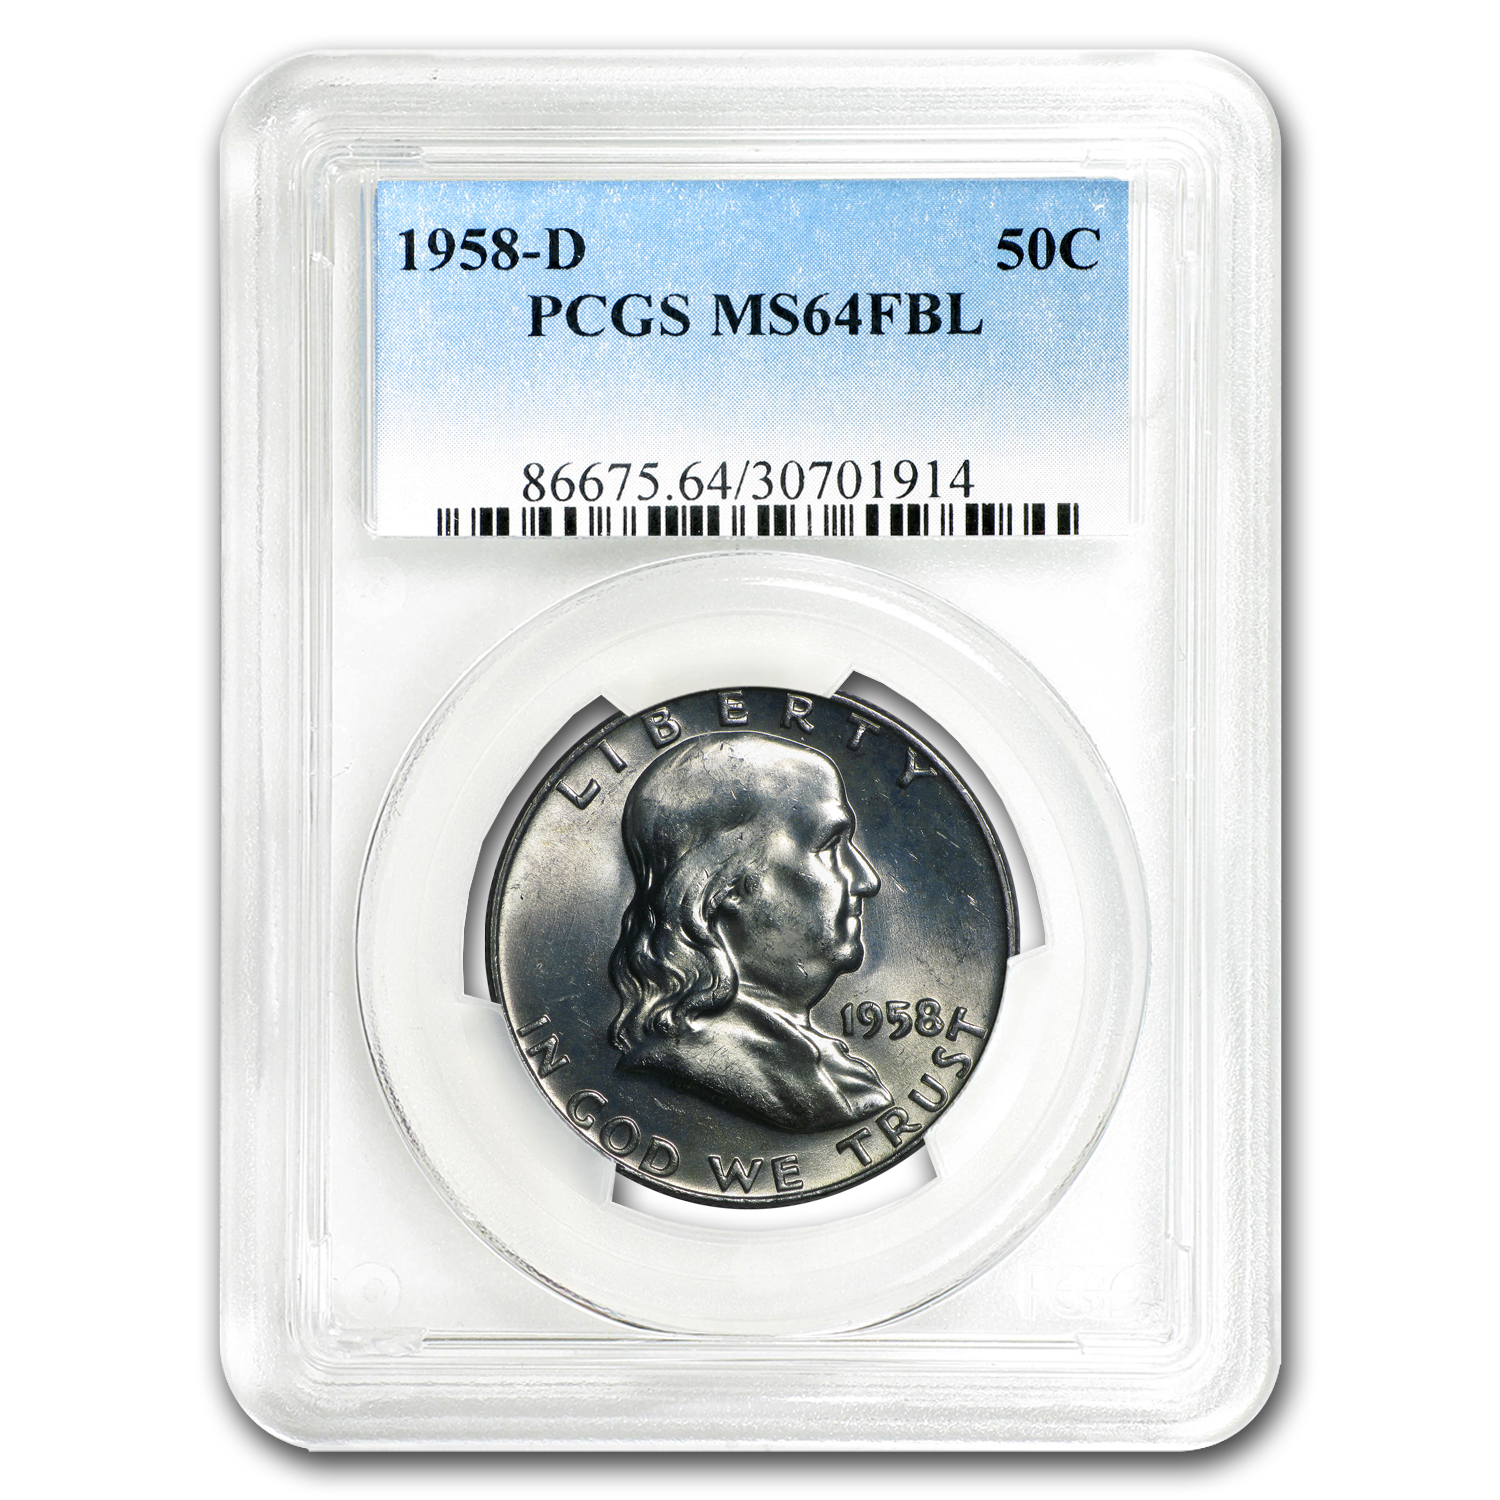 1958-D Franklin Half Dollar MS-64 PCGS (FBL)